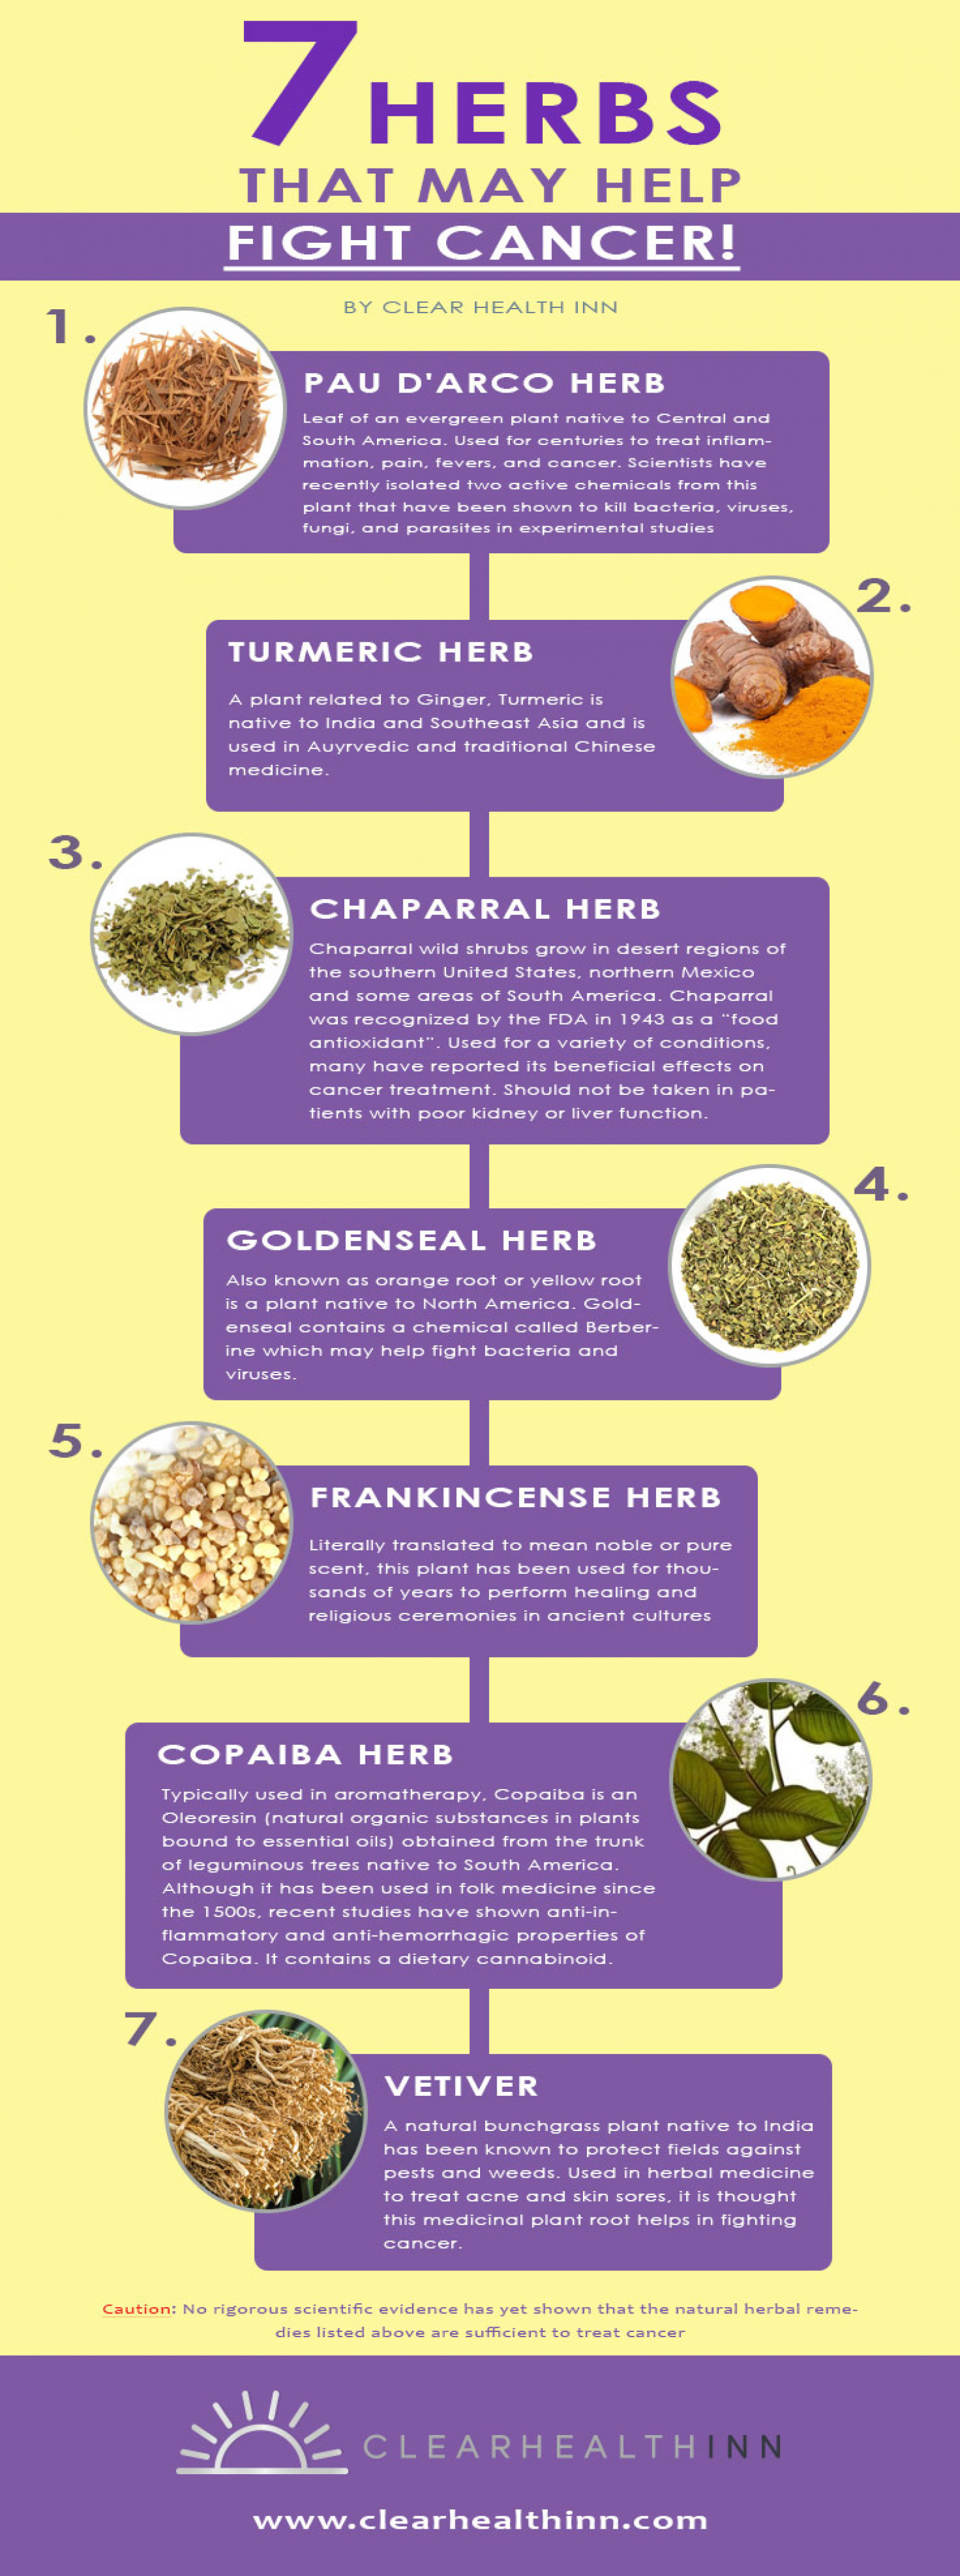 7 Herbs That May Help Fight Cancer Infographic